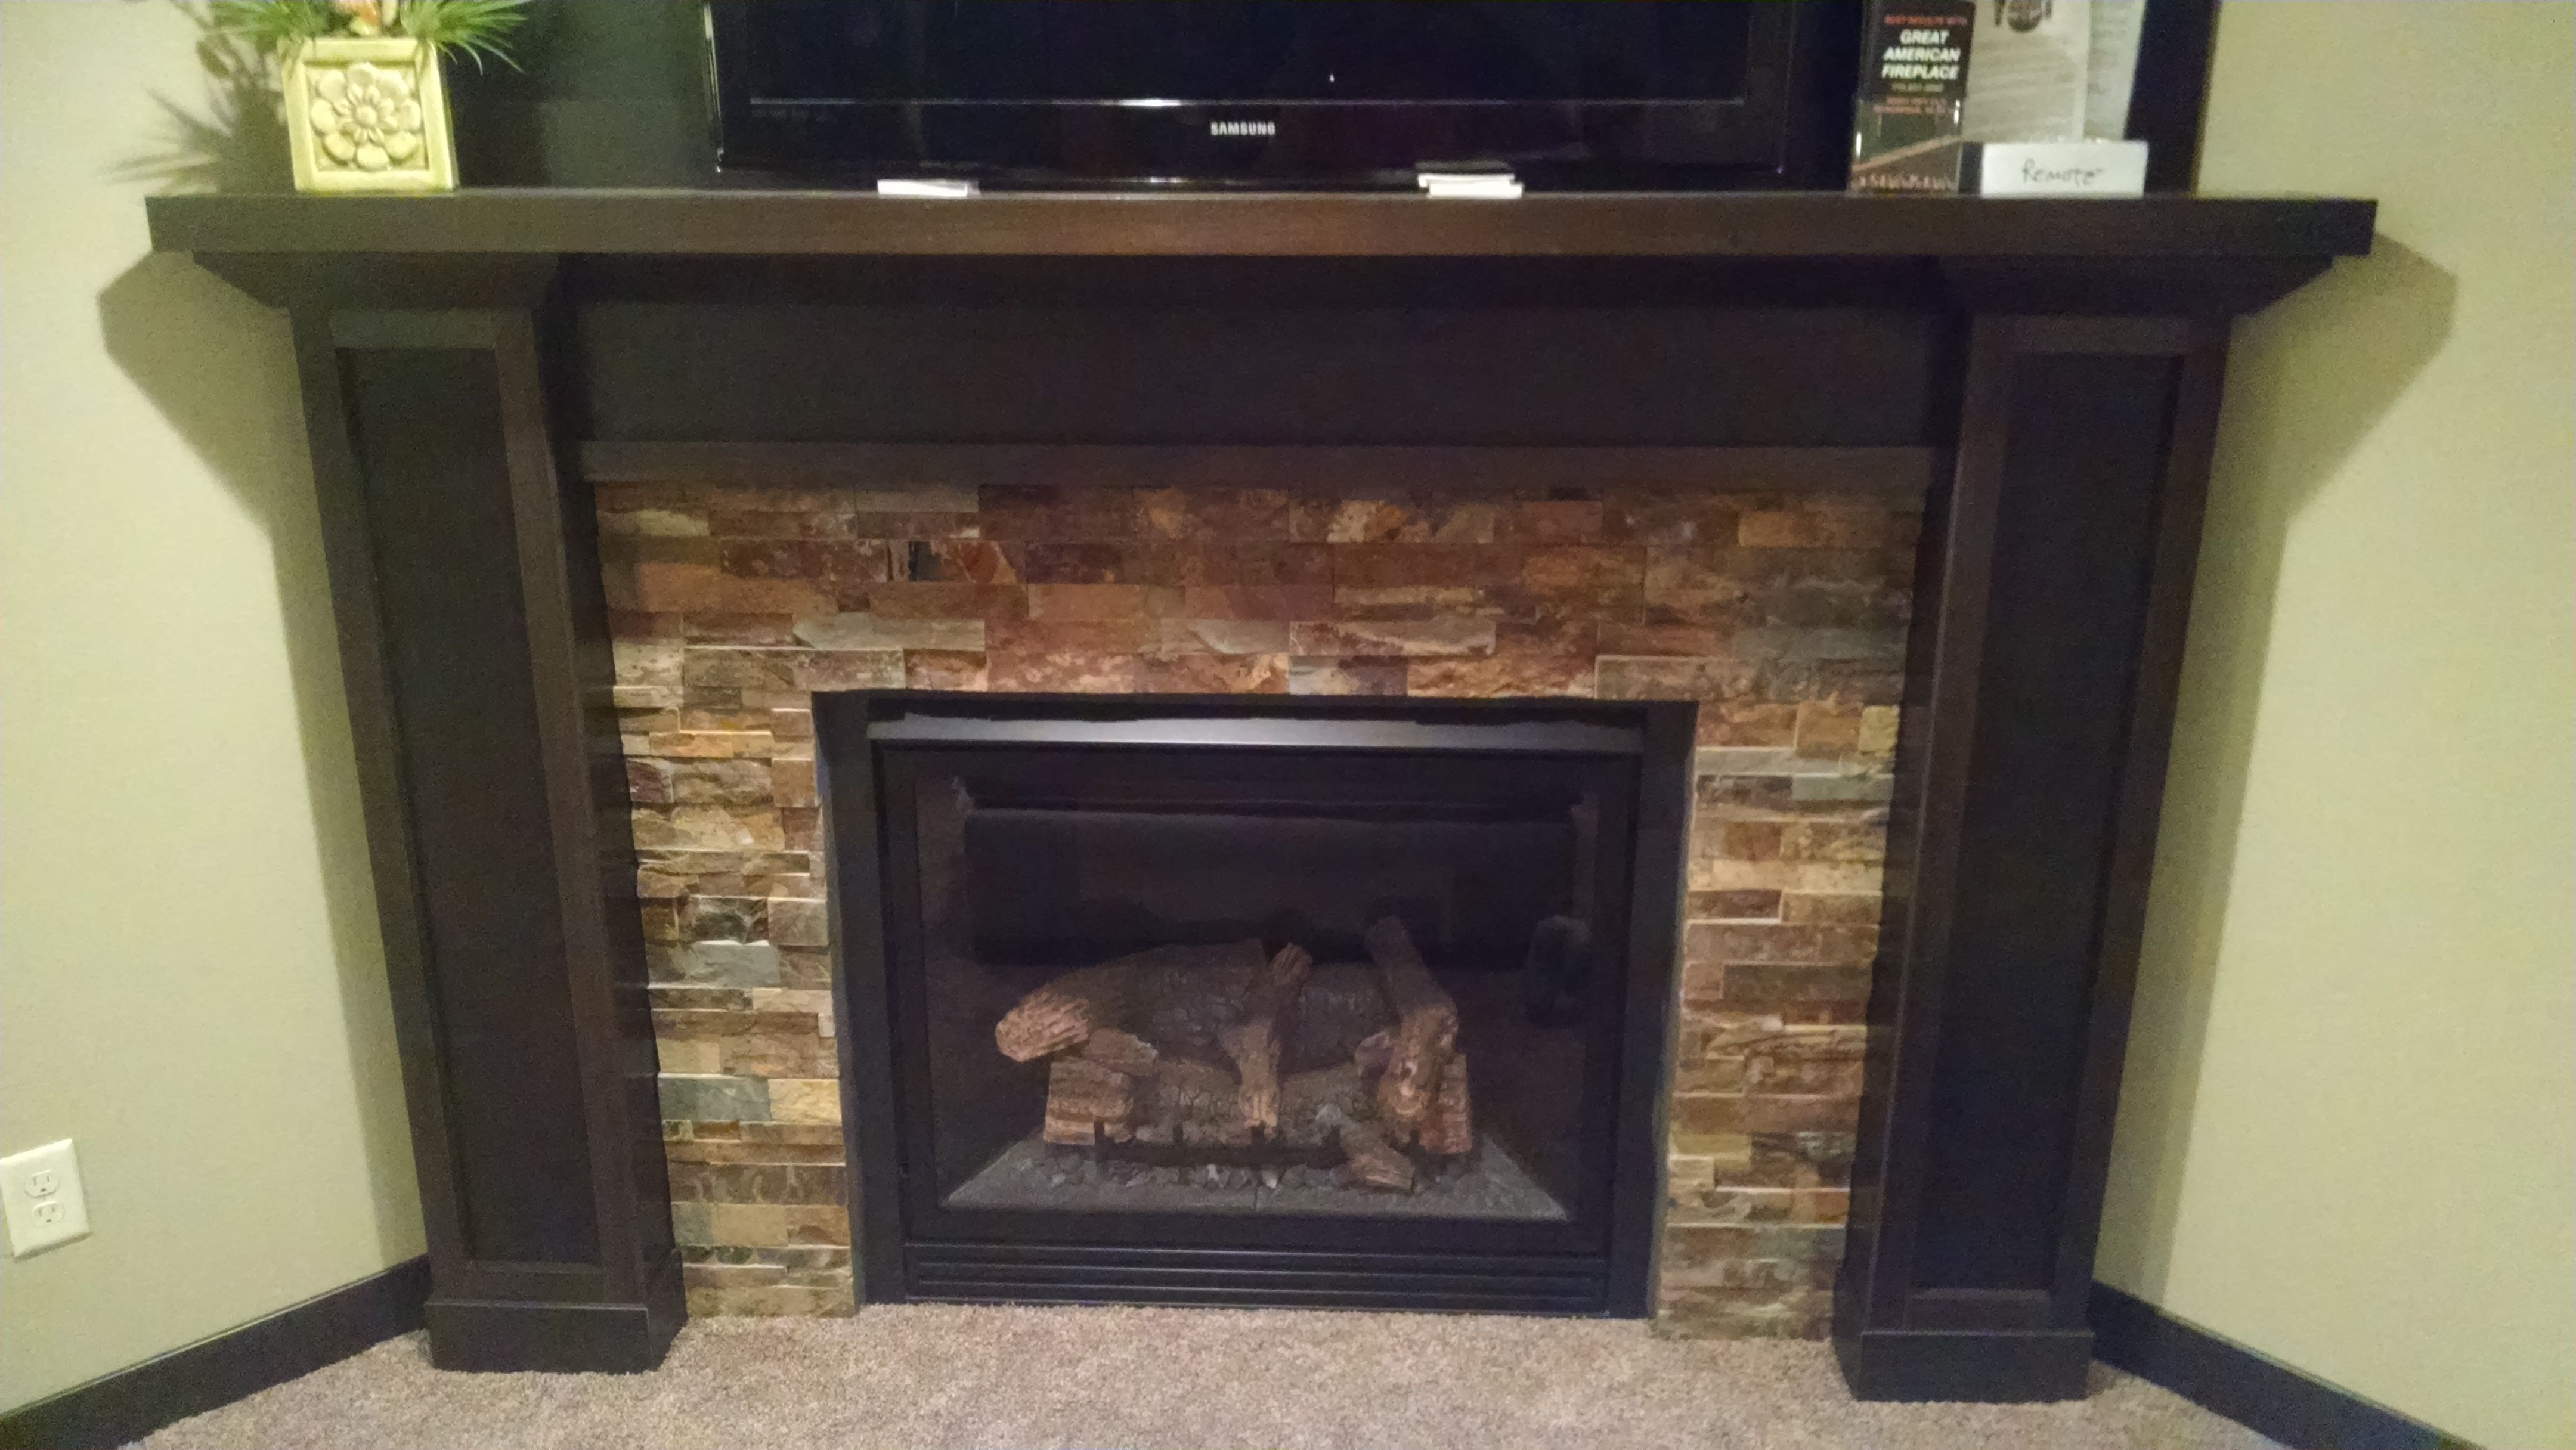 This fireplace is located in the basement rec room adding warmth for